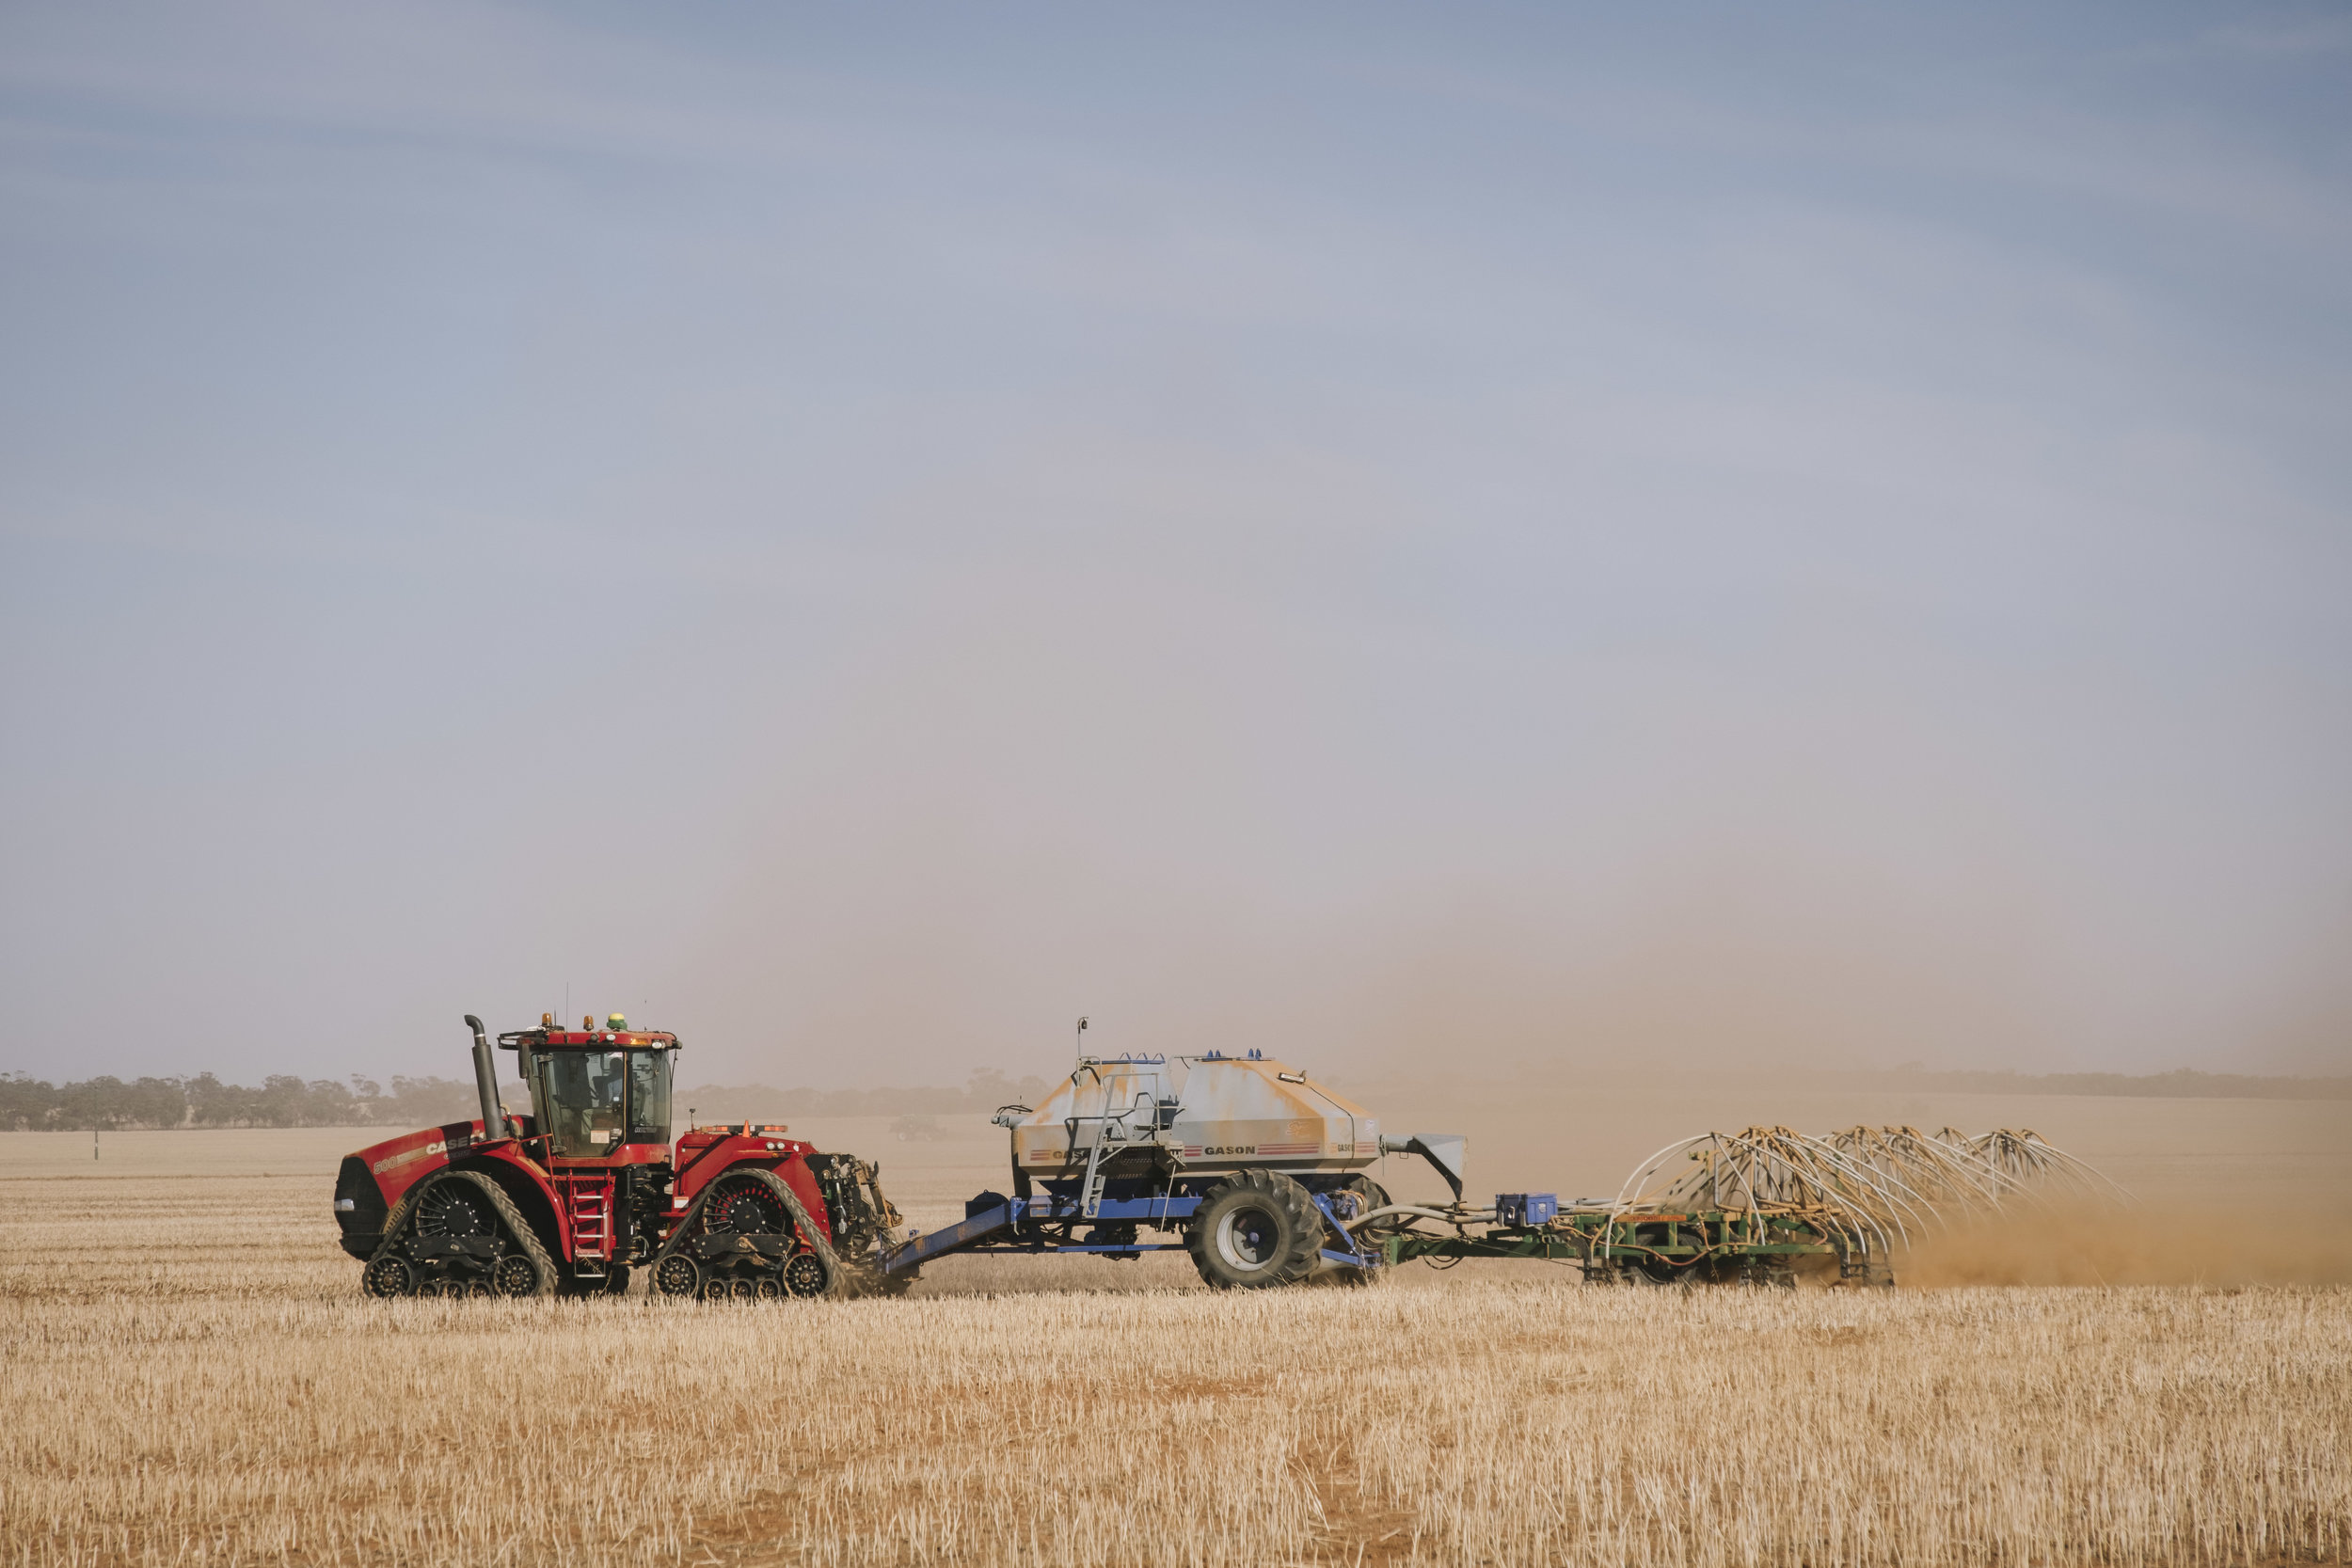 Angie Roe Photography Wheatbelt Rural Farm Landscape Seeding (11).jpg